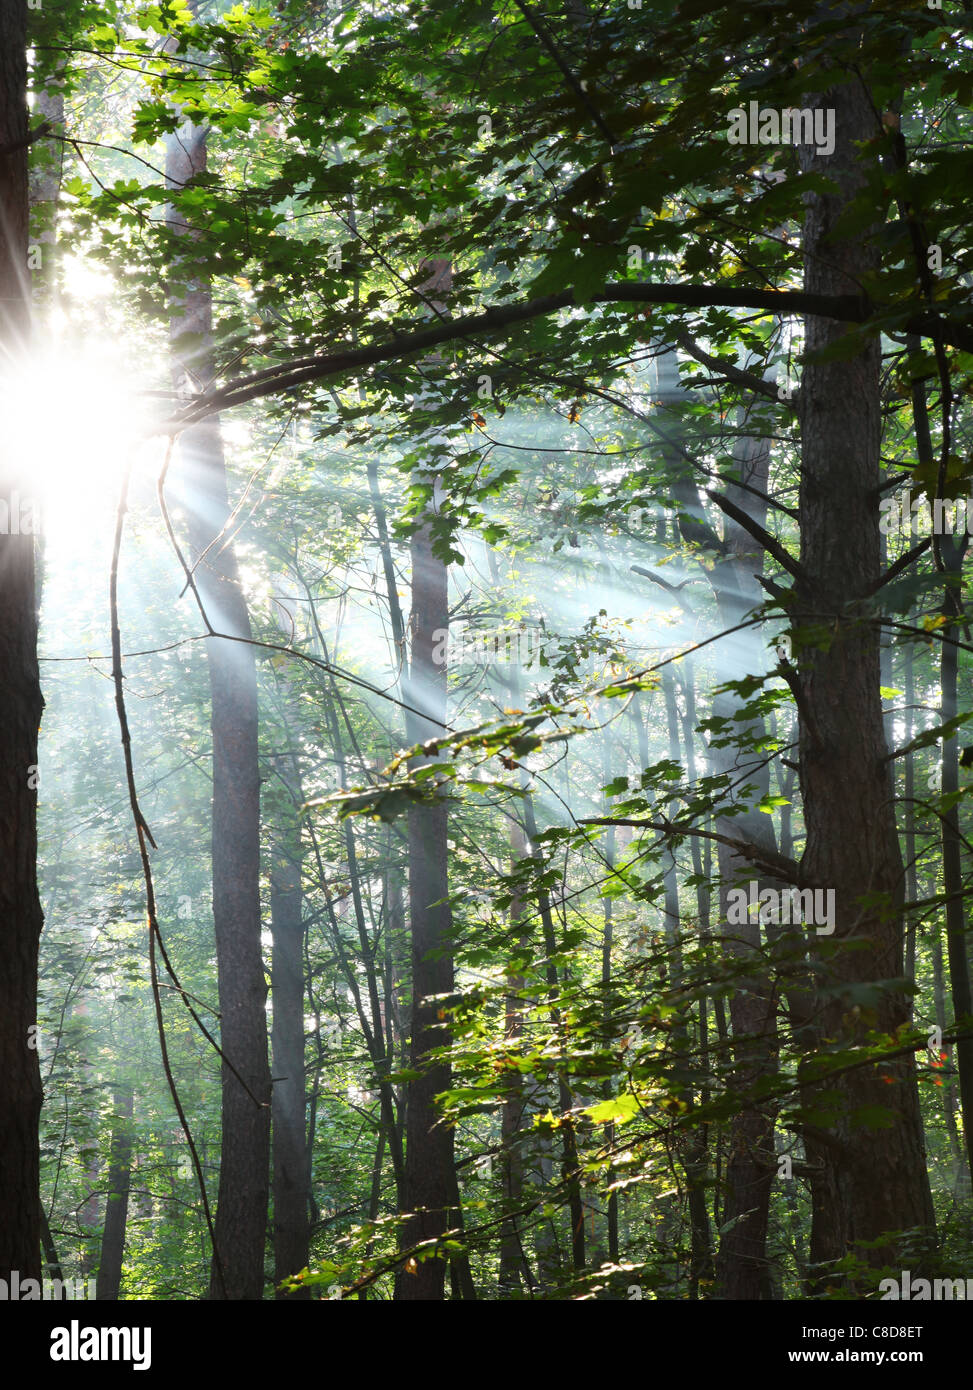 Sun's rays shining through the trees in the forest. - Stock Image